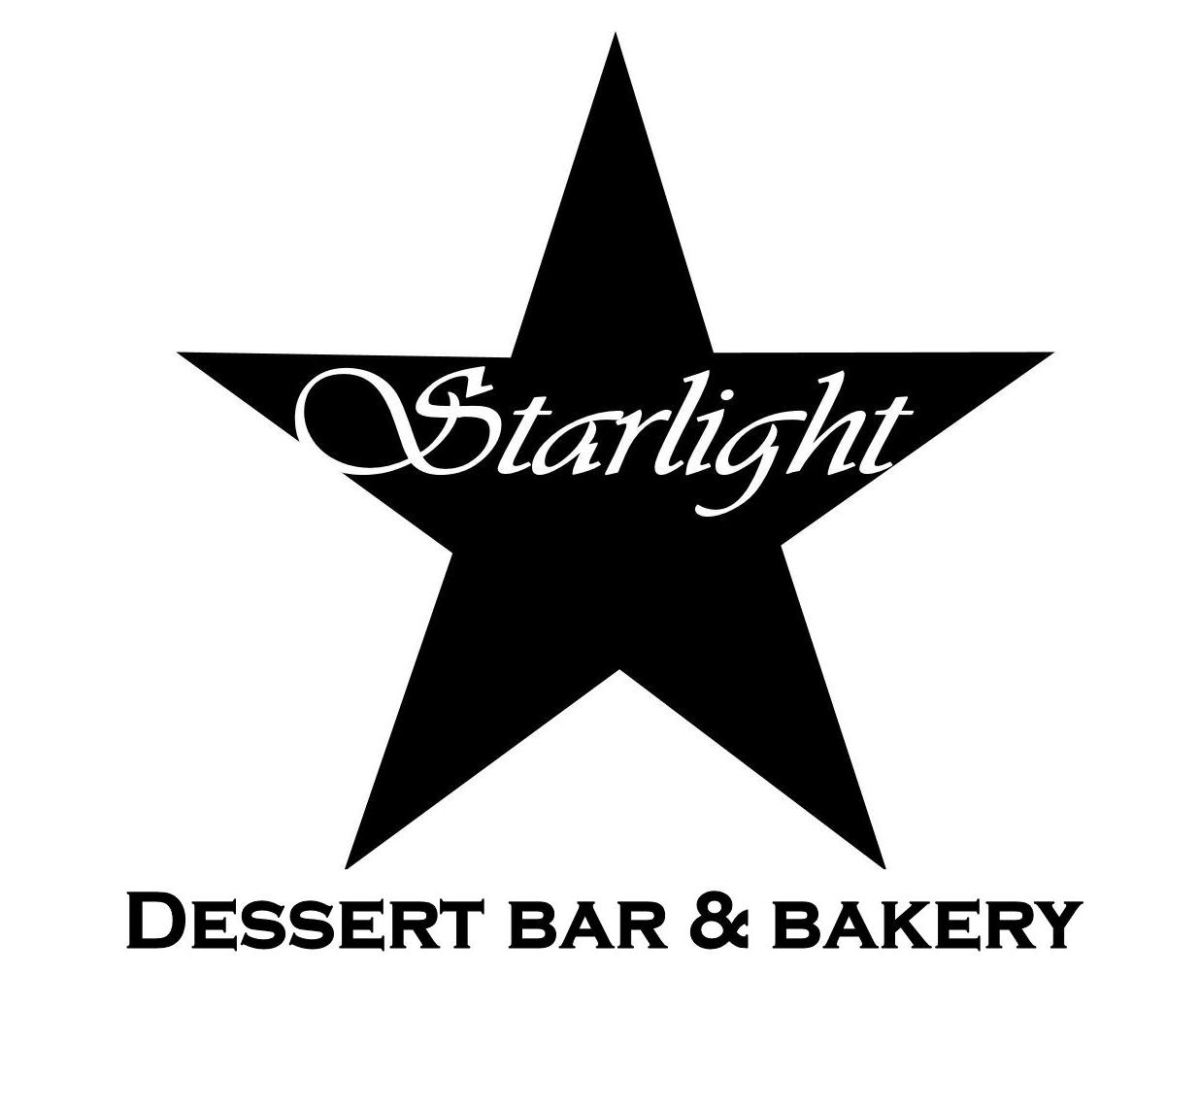 Starlight Dessert Bar & Bakery